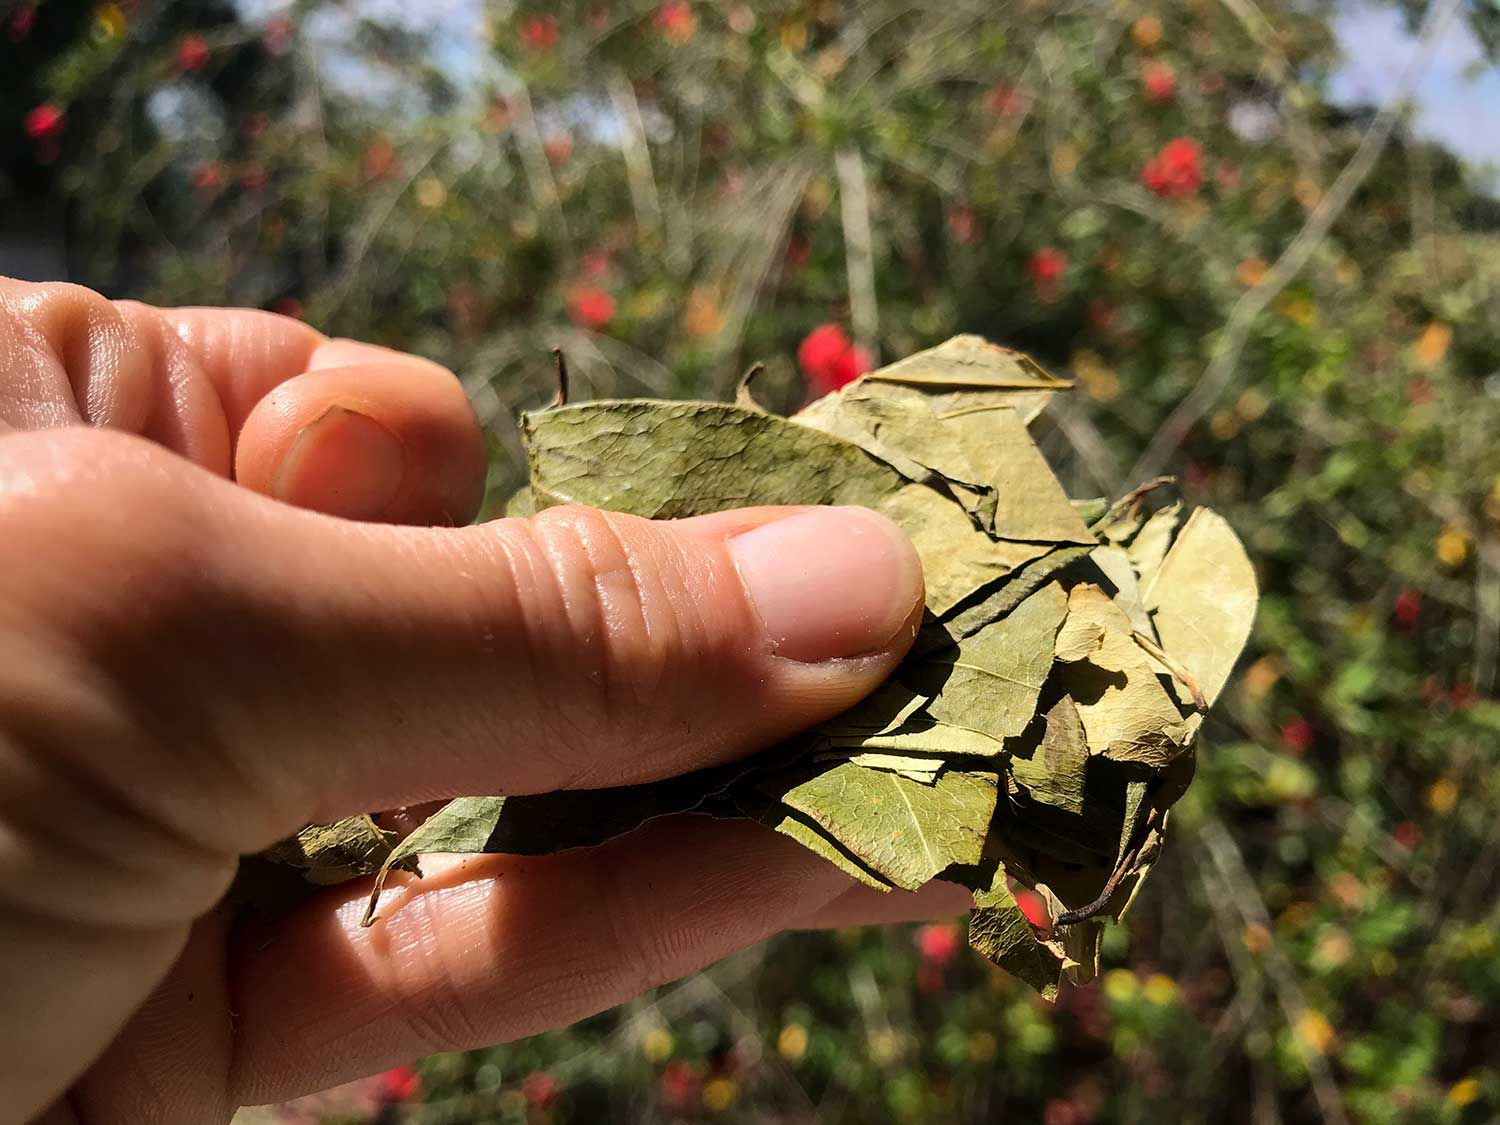 Coca leaves are an integral part of the lives of the Andean peoples from both a cultural and traditional medicine perspective.